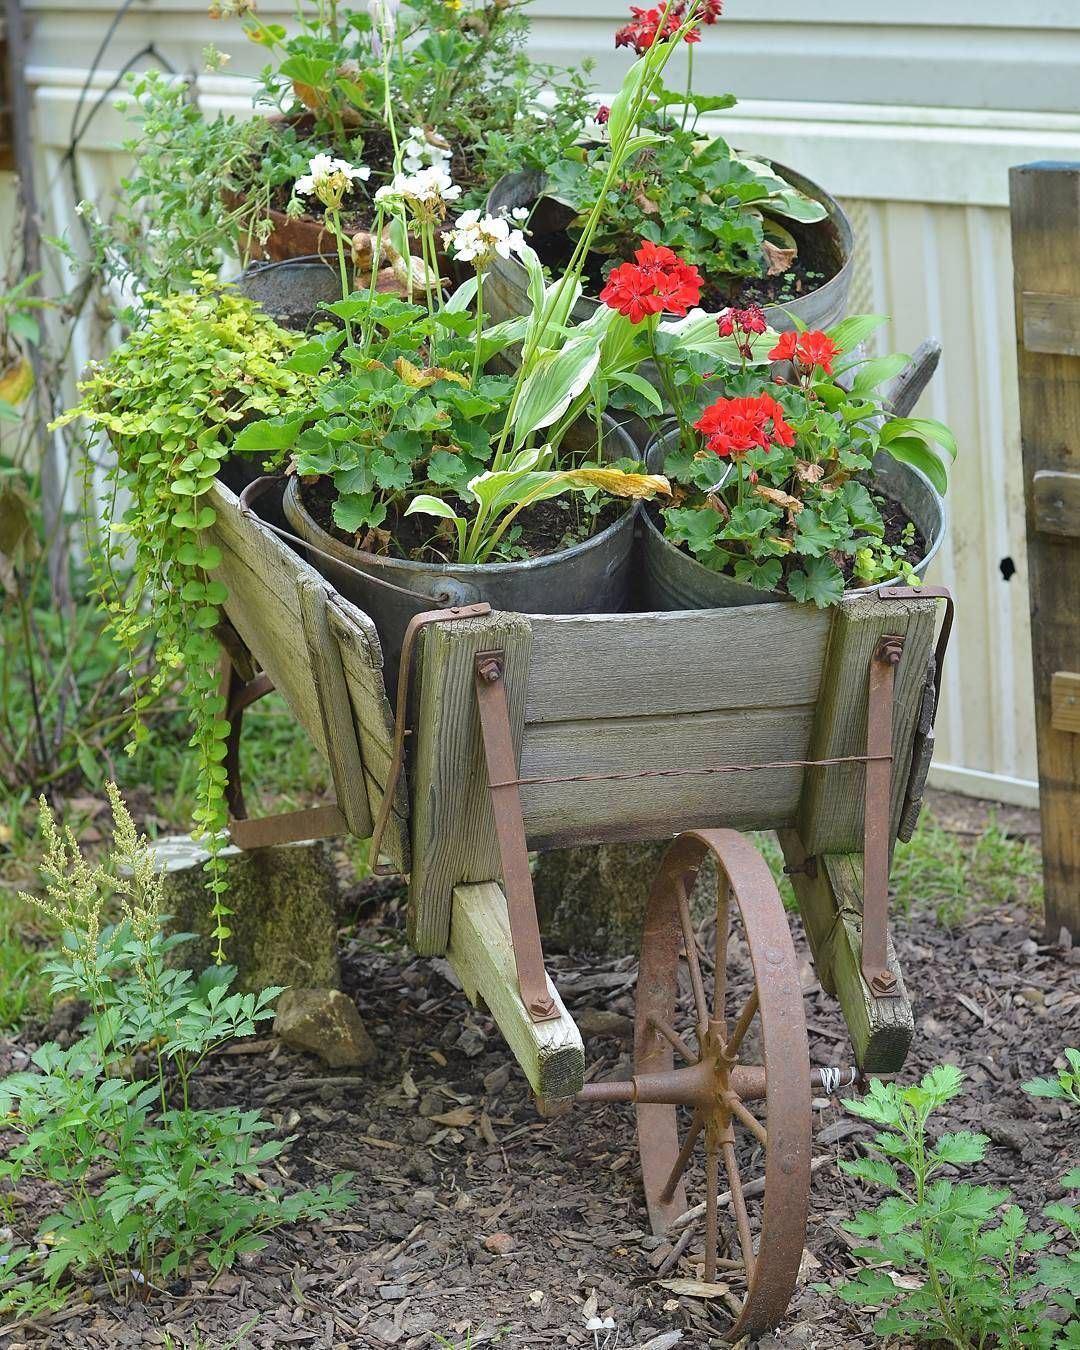 Garden decor out of junk  See this Instagram photo by thefreckledfarmhouse u  likes